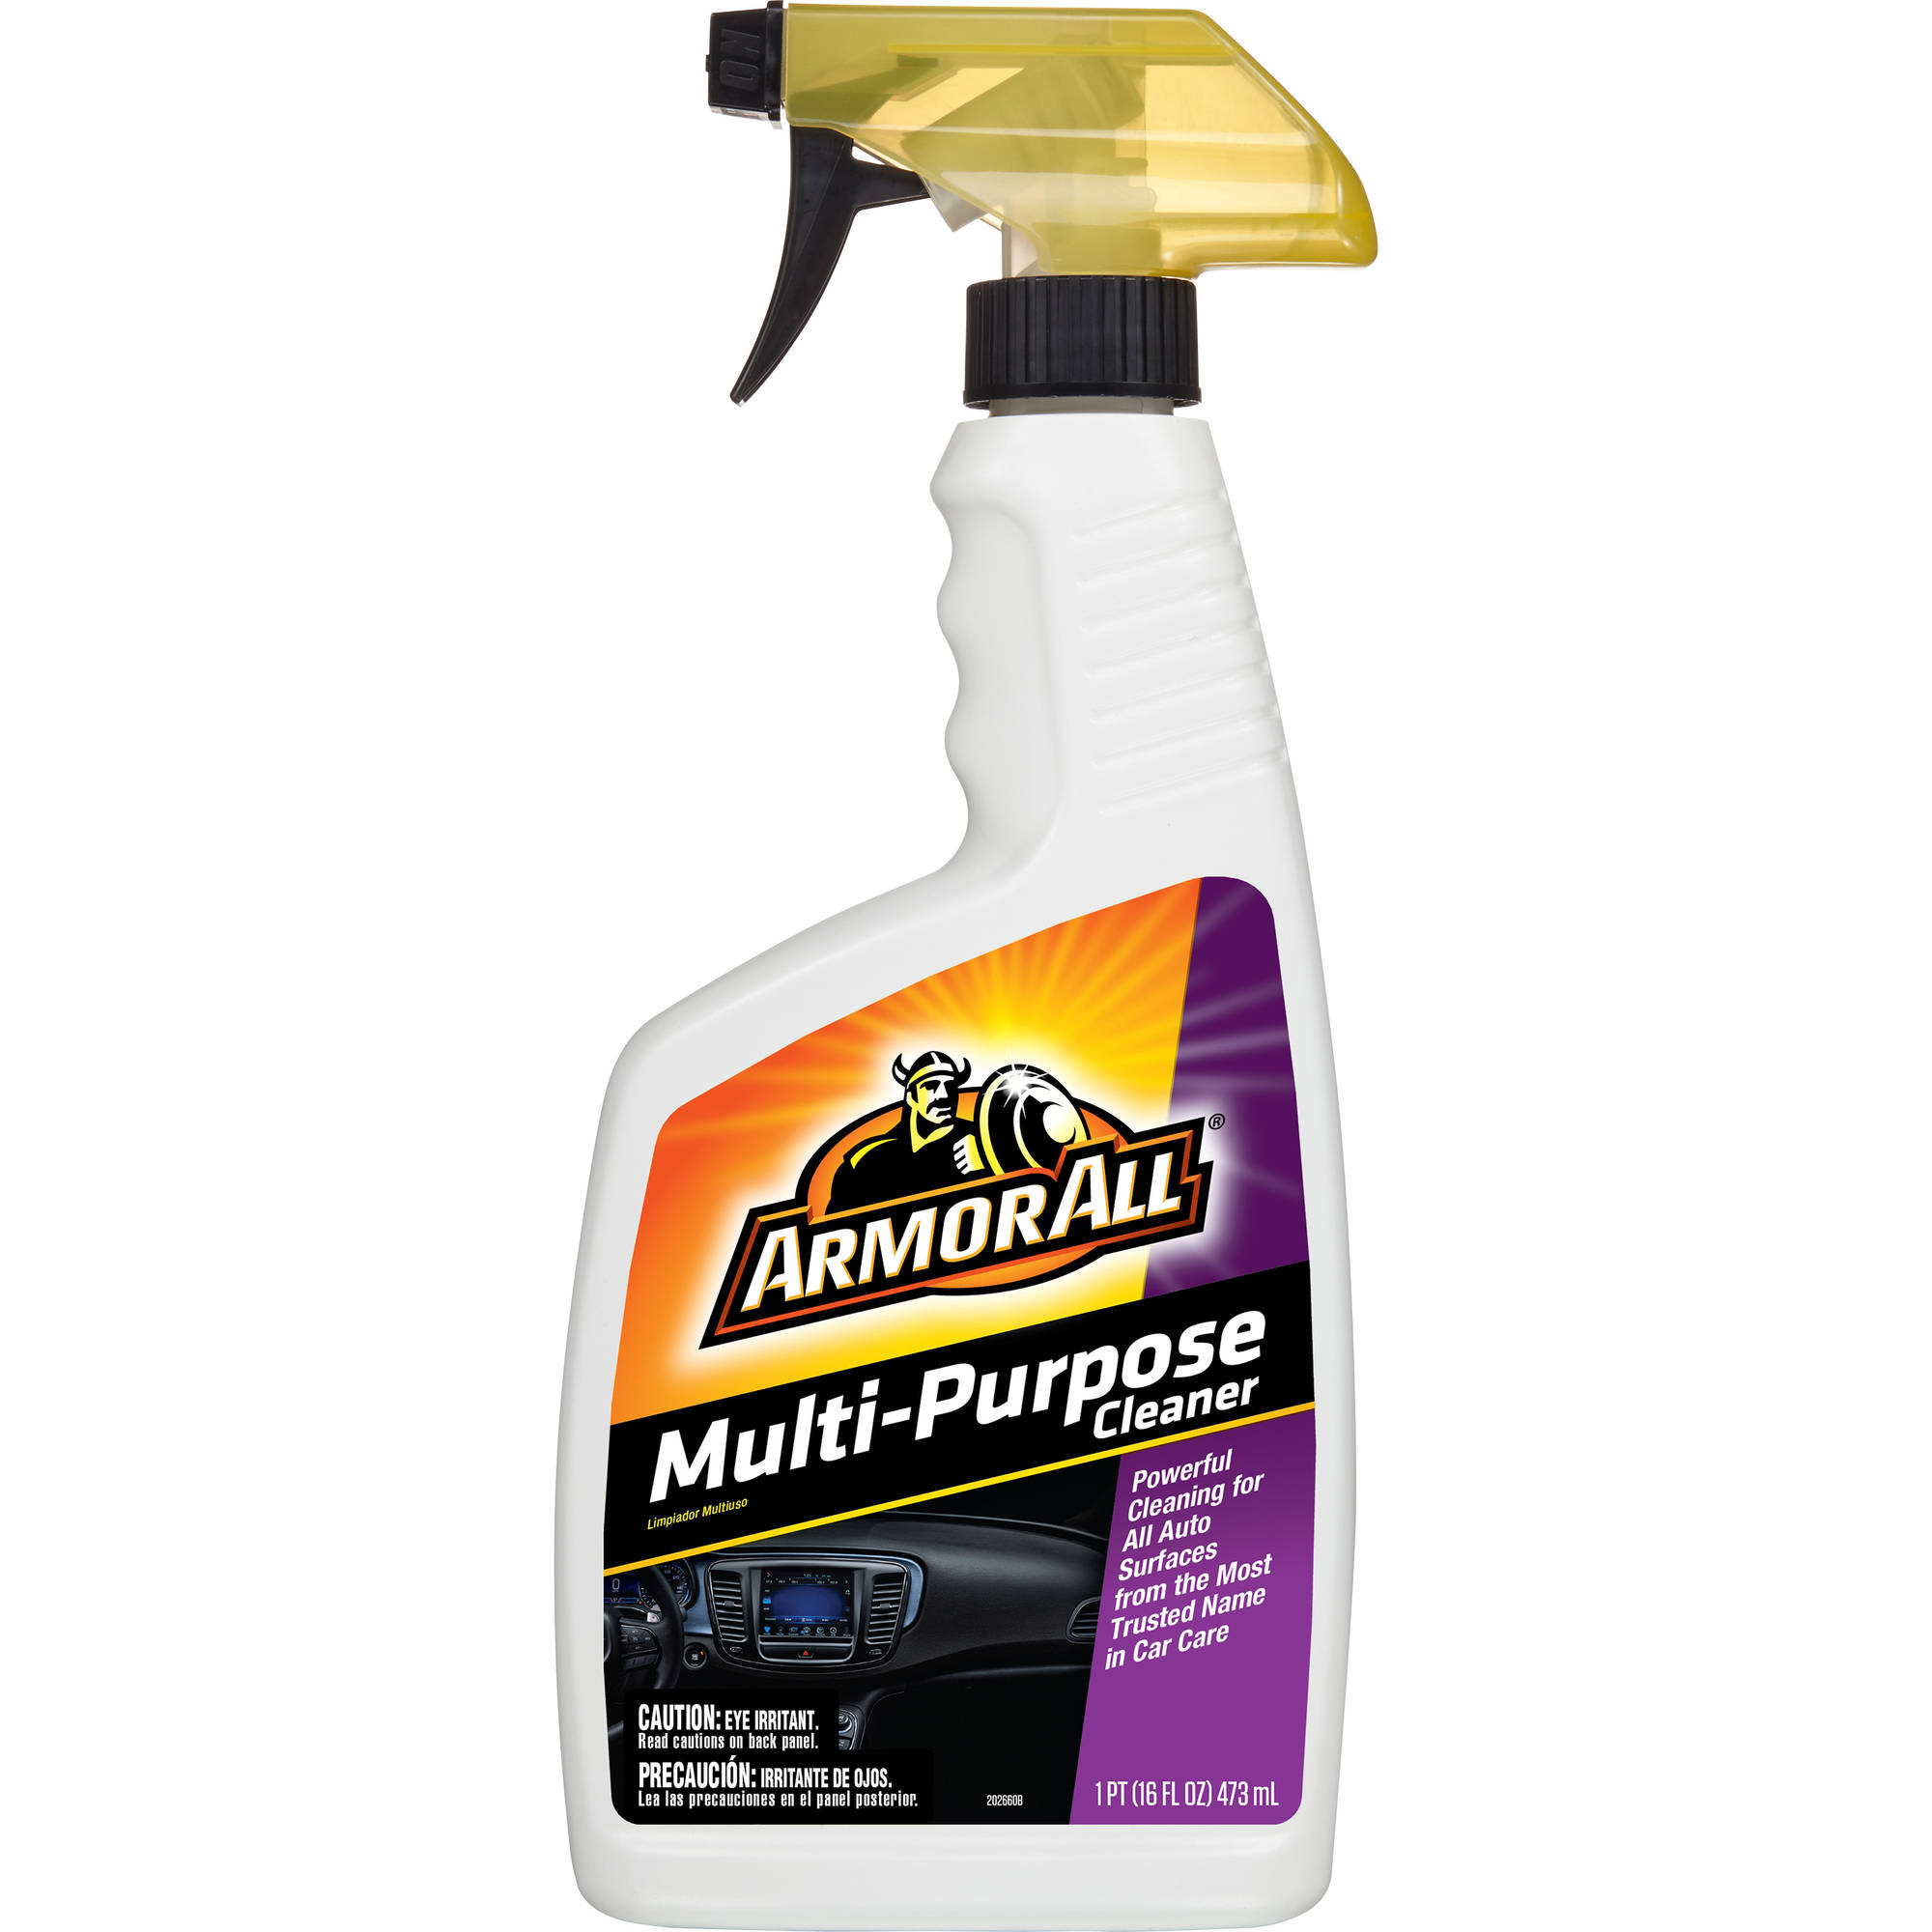 Armor All Multipurpose Cleaner, 16 oz by Armored Autogroup Sales Inc